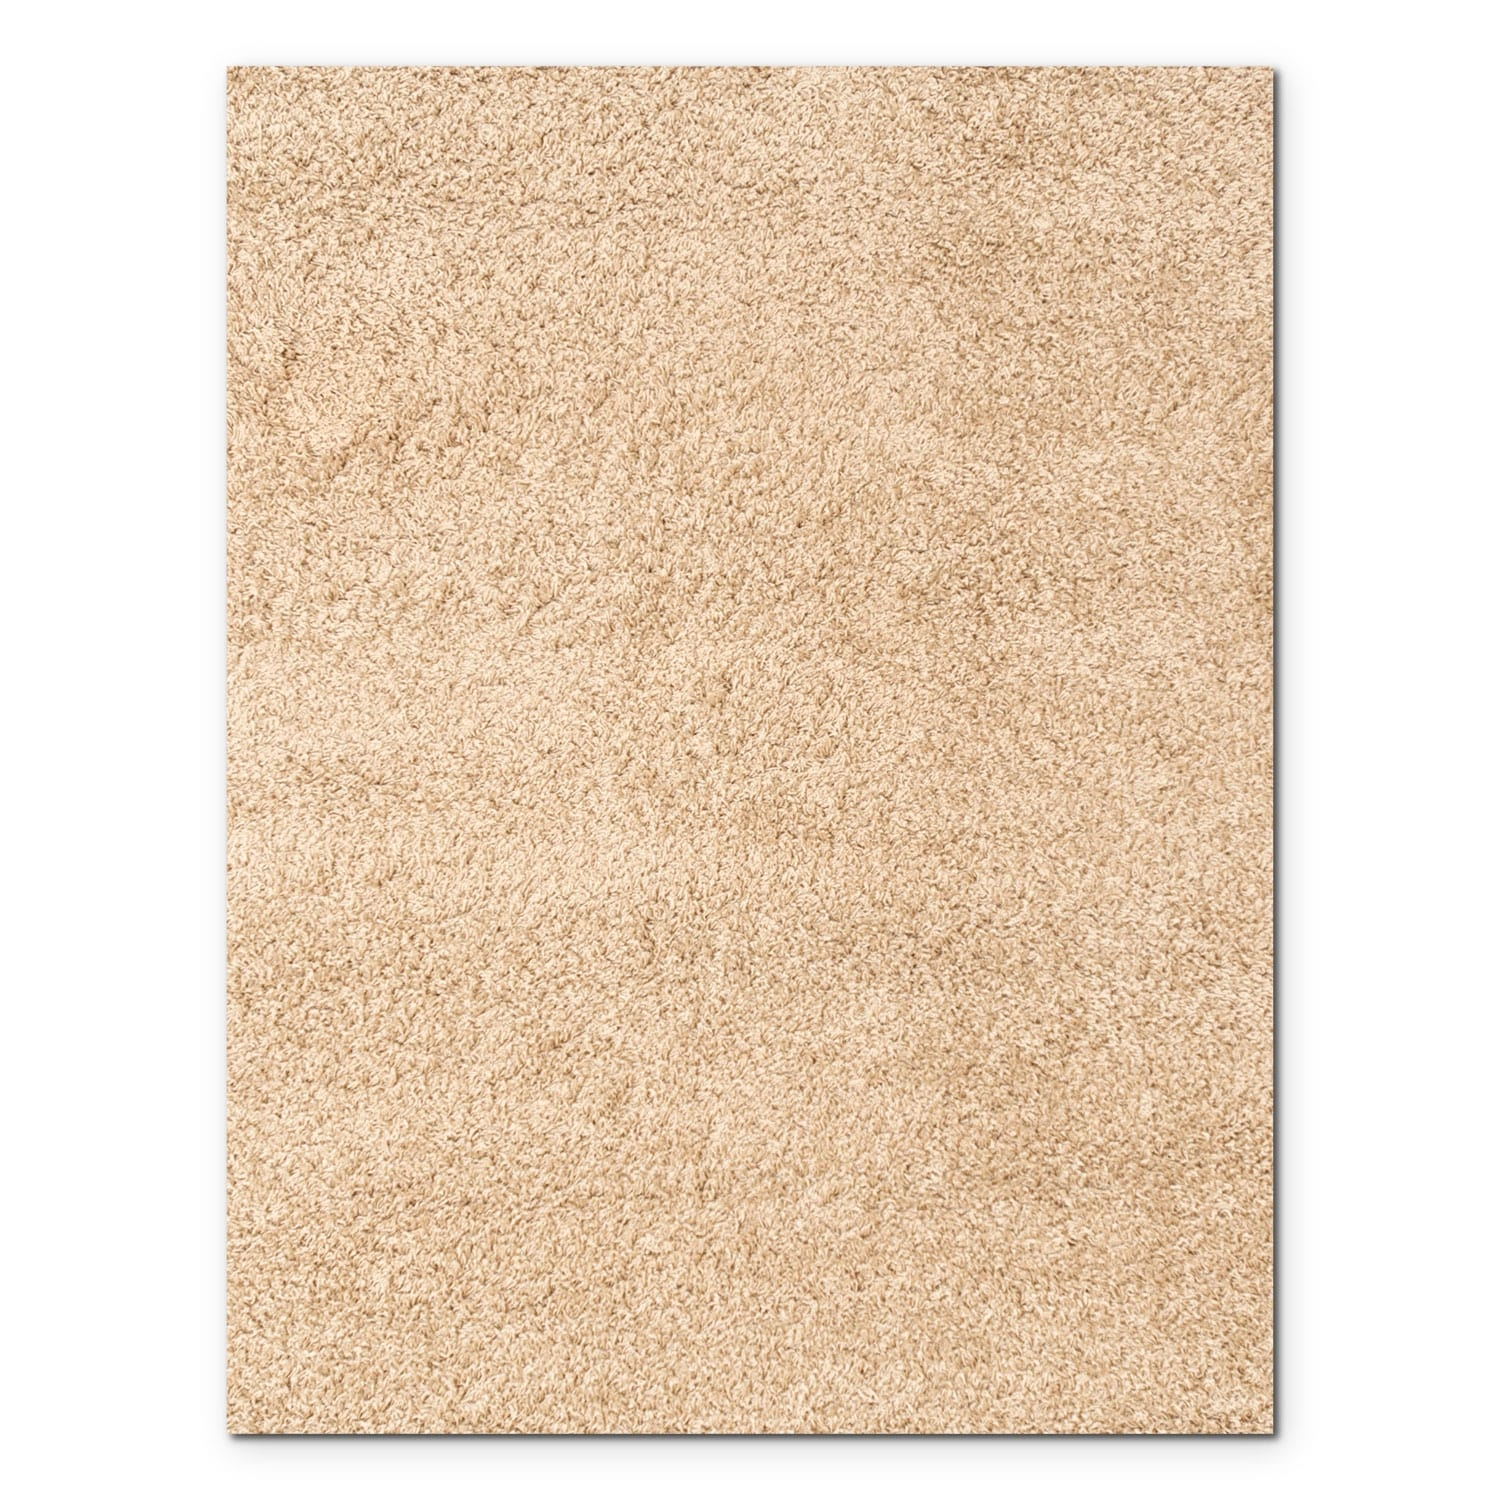 Rugs - Domino Taupe Shag Area Rug (8' x 10')